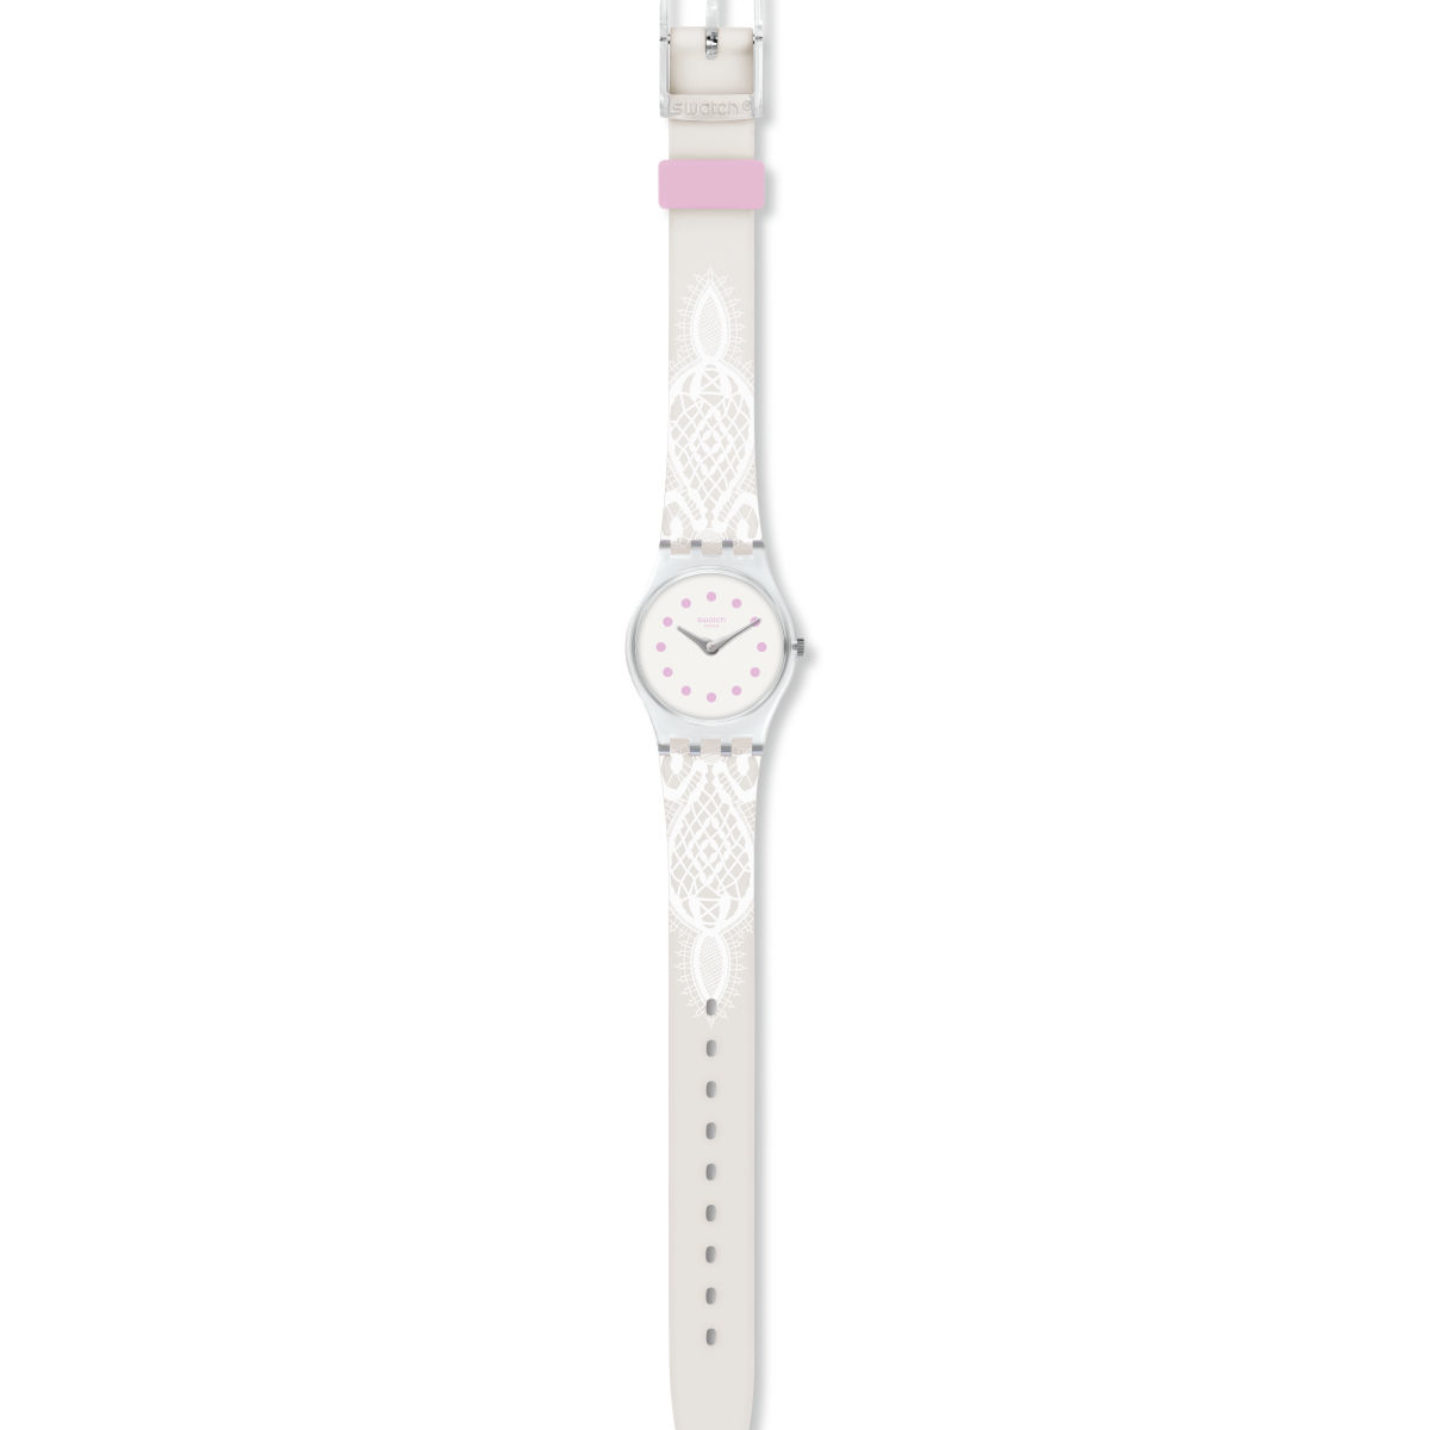 Swatch DENTELLINA Watch